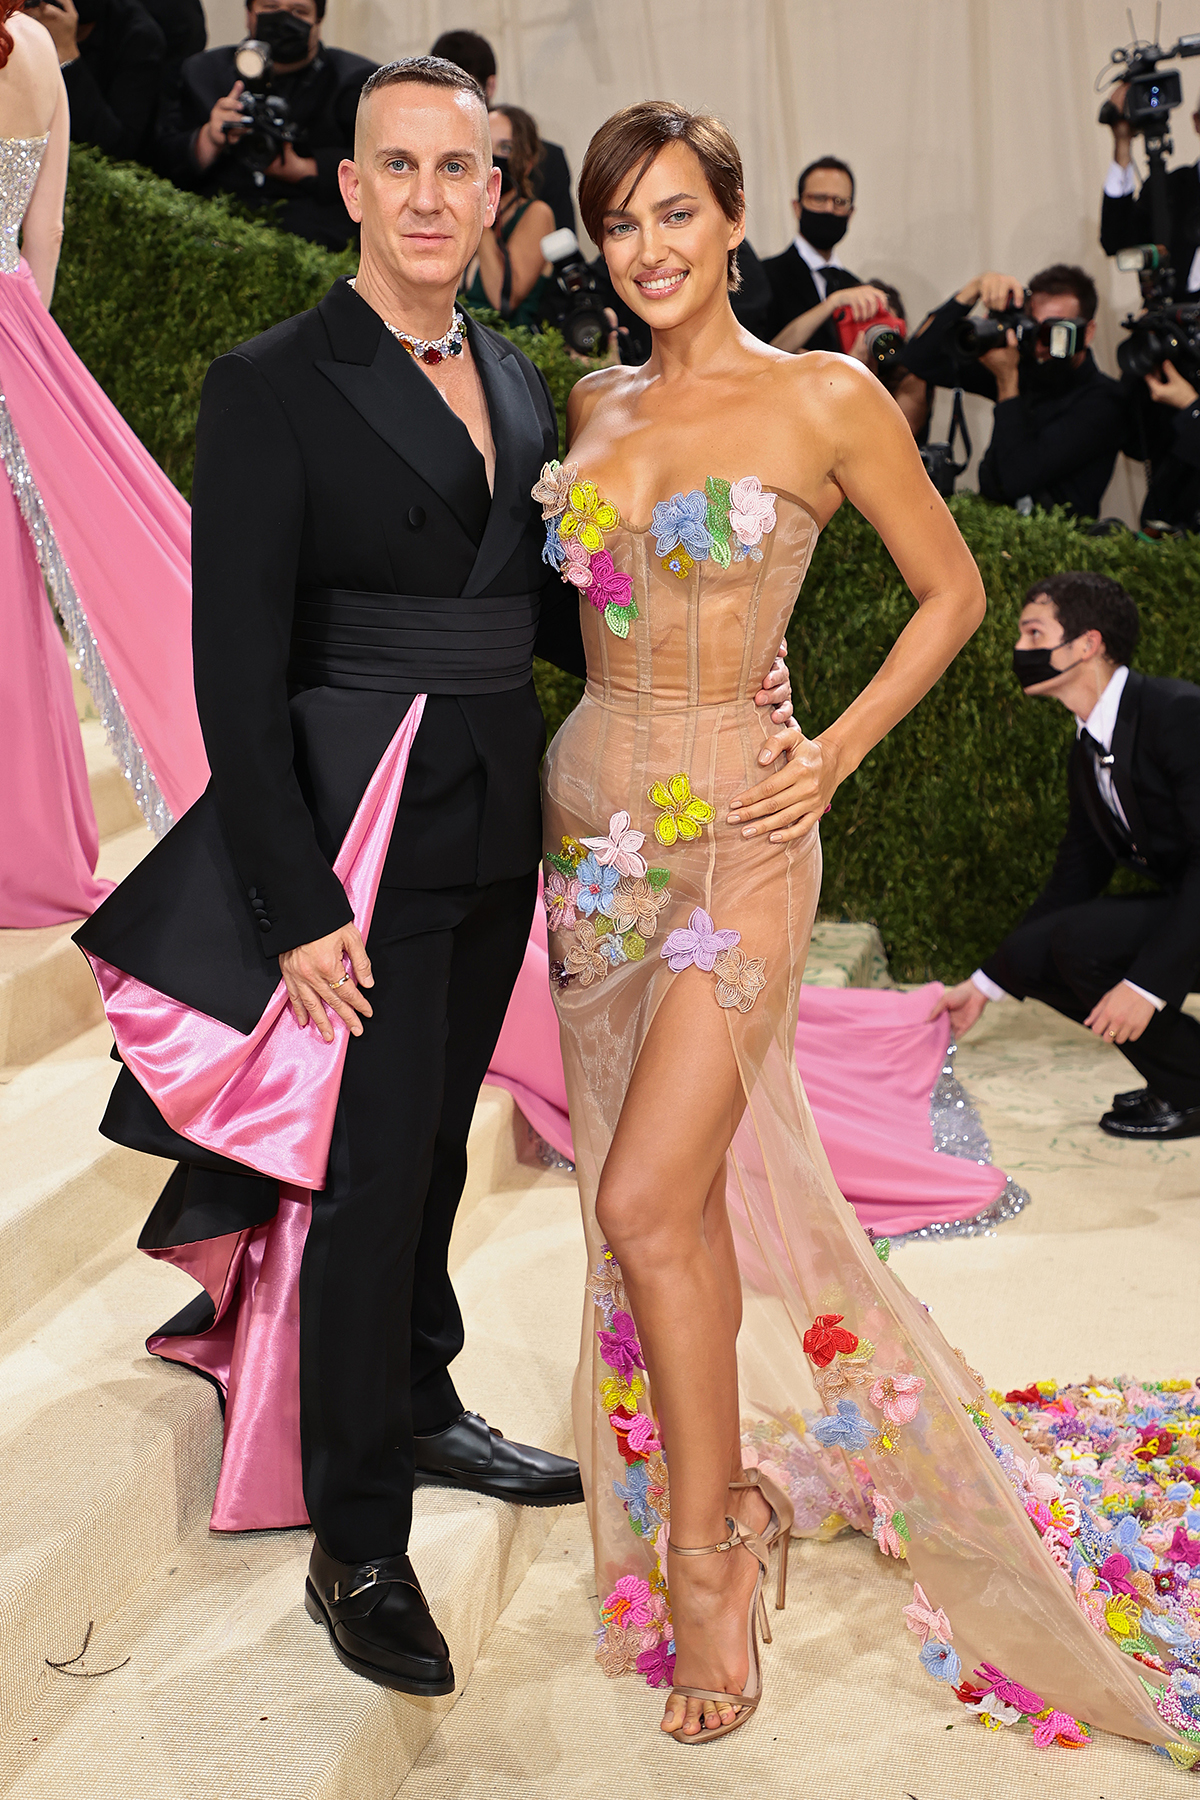 Jeremy Scott and Irina Shayk attend The 2021 Met Gala Celebrating In America: A Lexicon Of Fashion at Metropolitan Museum of Art on September 13, 2021 in New York City.